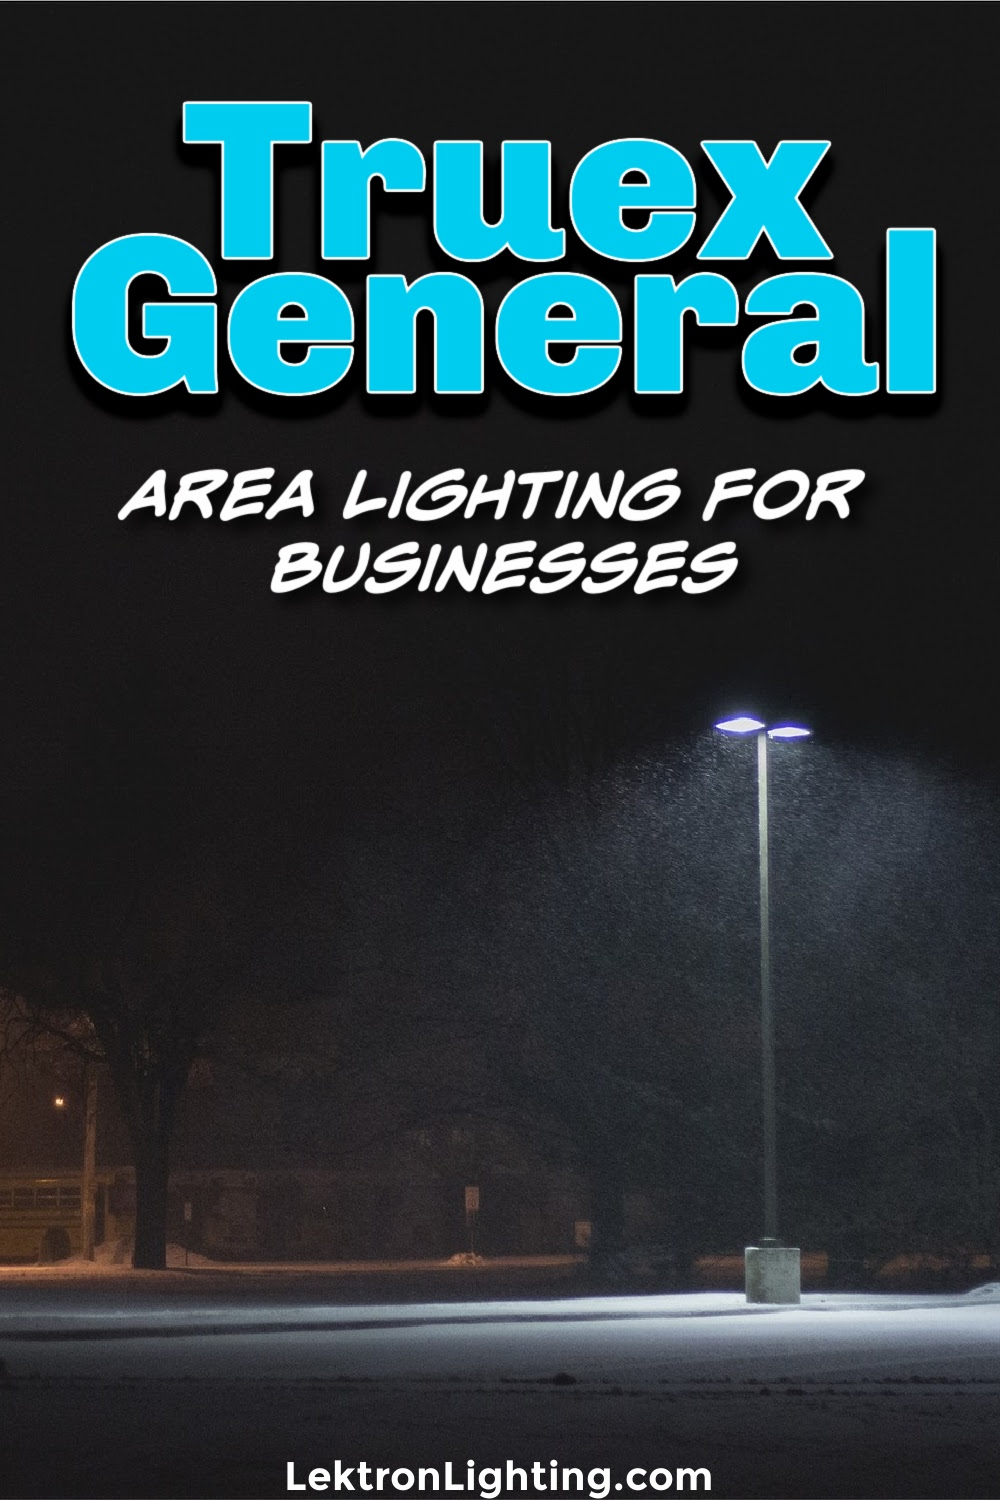 Truex general area lighting for business can help you light the way for clients, customers, and anyone else who may require some sight.